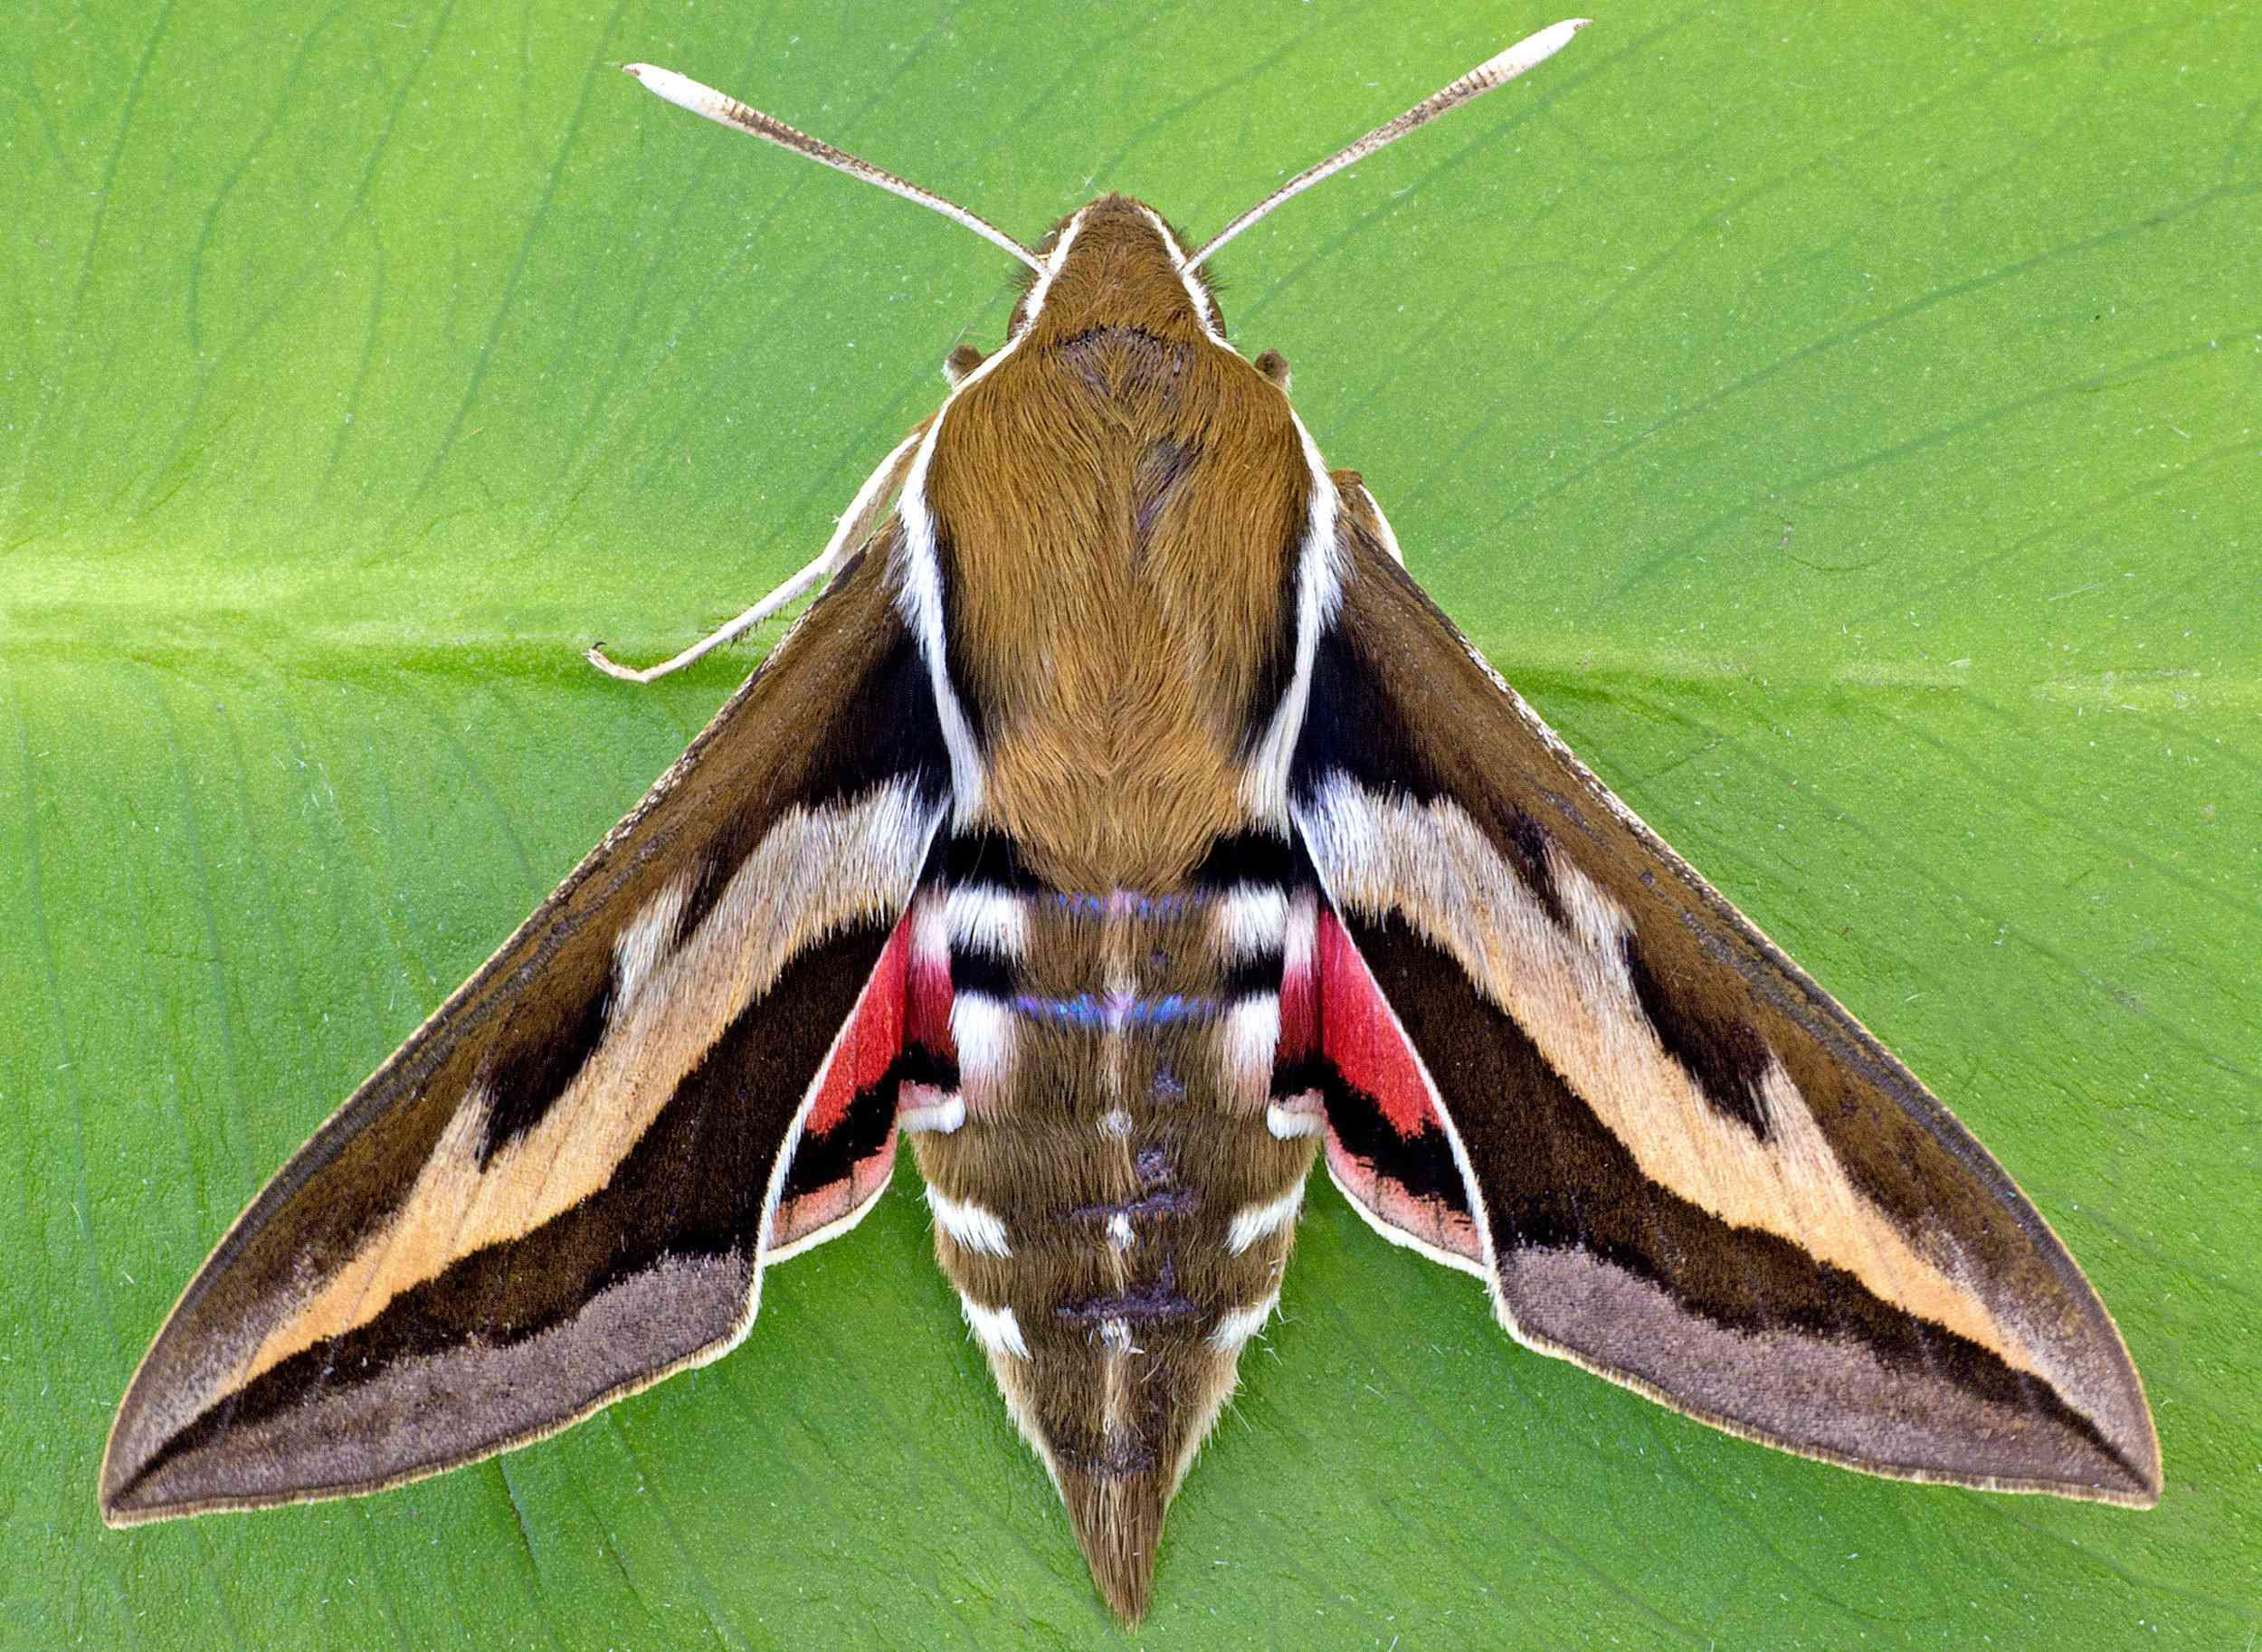 A brown and white moth sits on a leaf